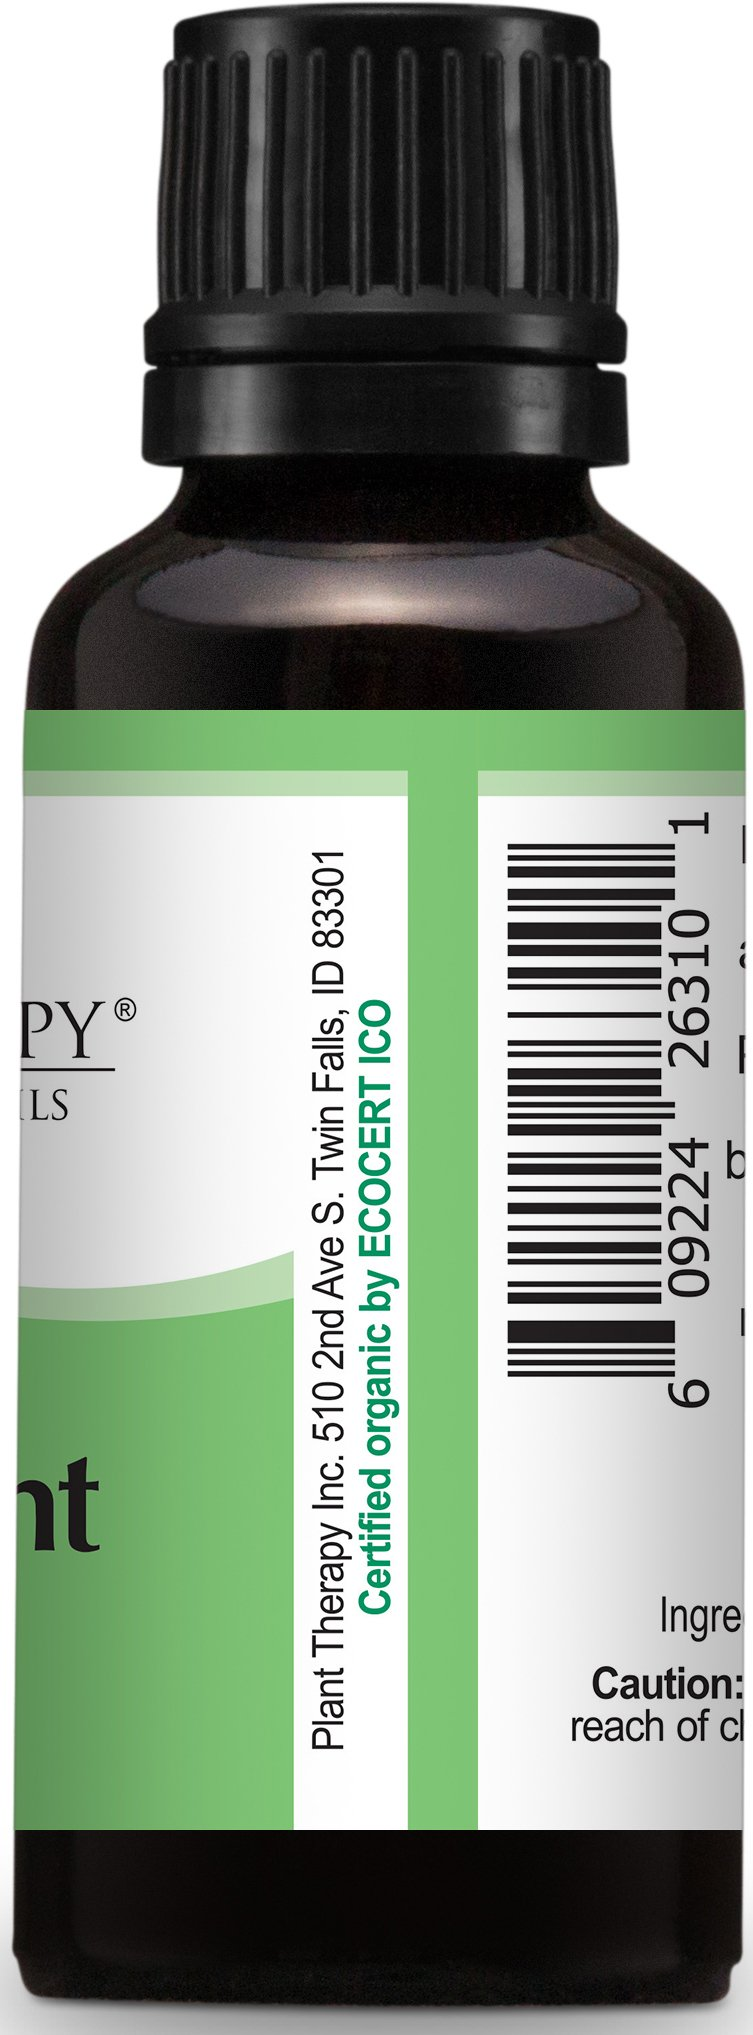 Plant Therapy USDA Certified Organic Peppermint Essential Oil. 100% Pure, Undiluted, Therapeutic Grade. 30 mL (1 Ounce). by Plant Therapy (Image #5)